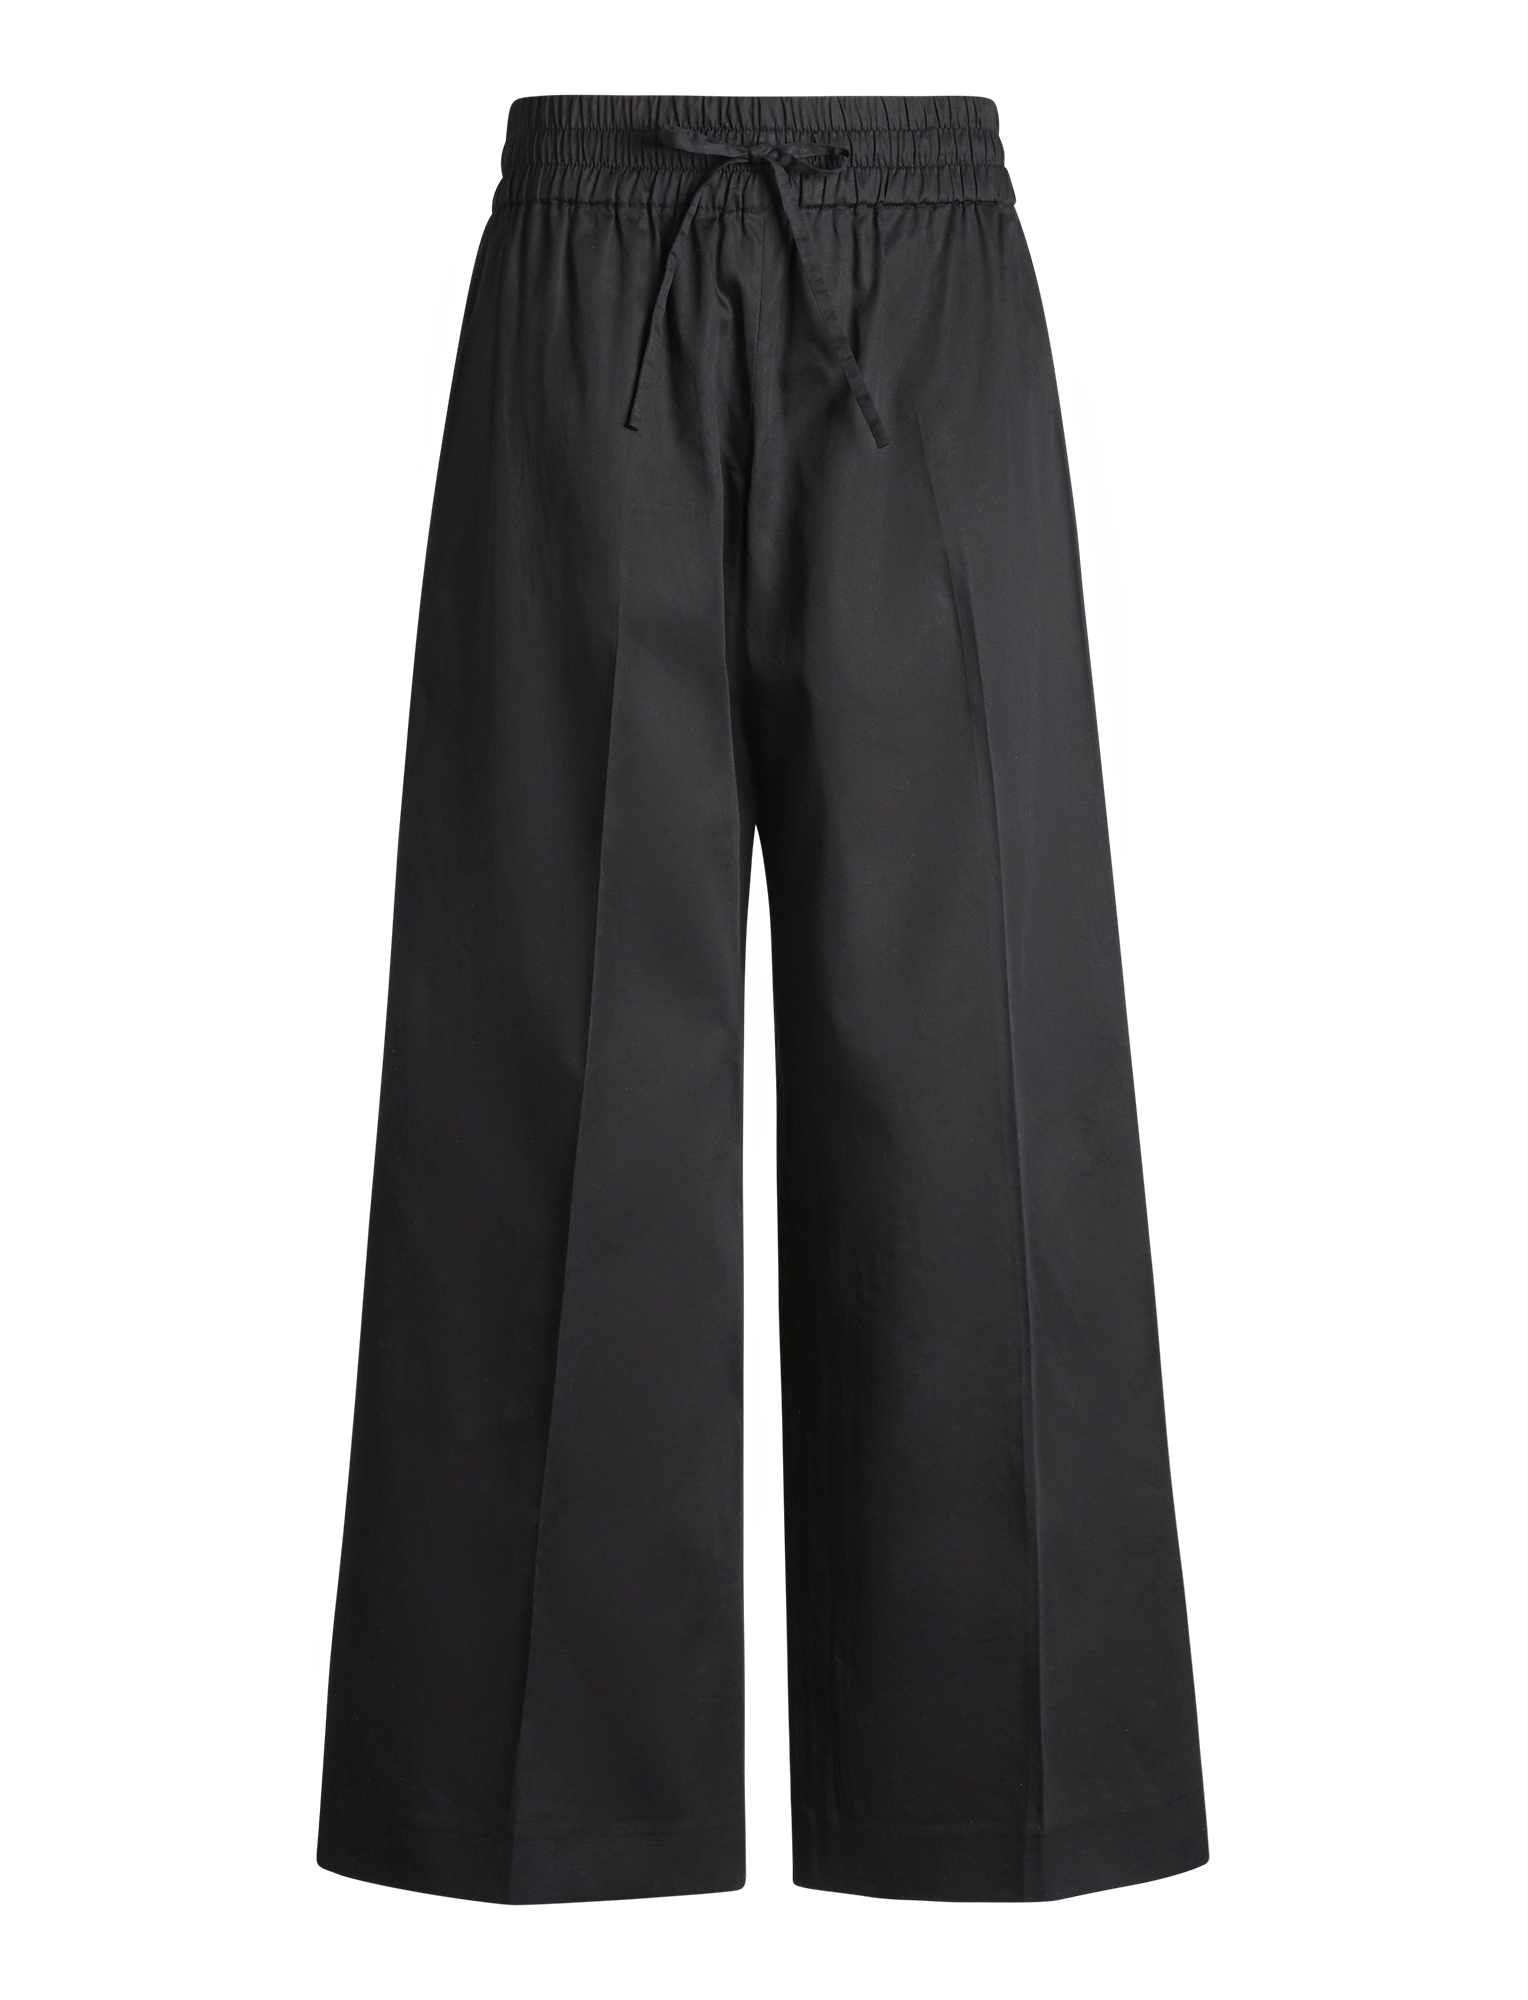 Joseph, Dahlman Refined Cotton Trousers, in BLACK